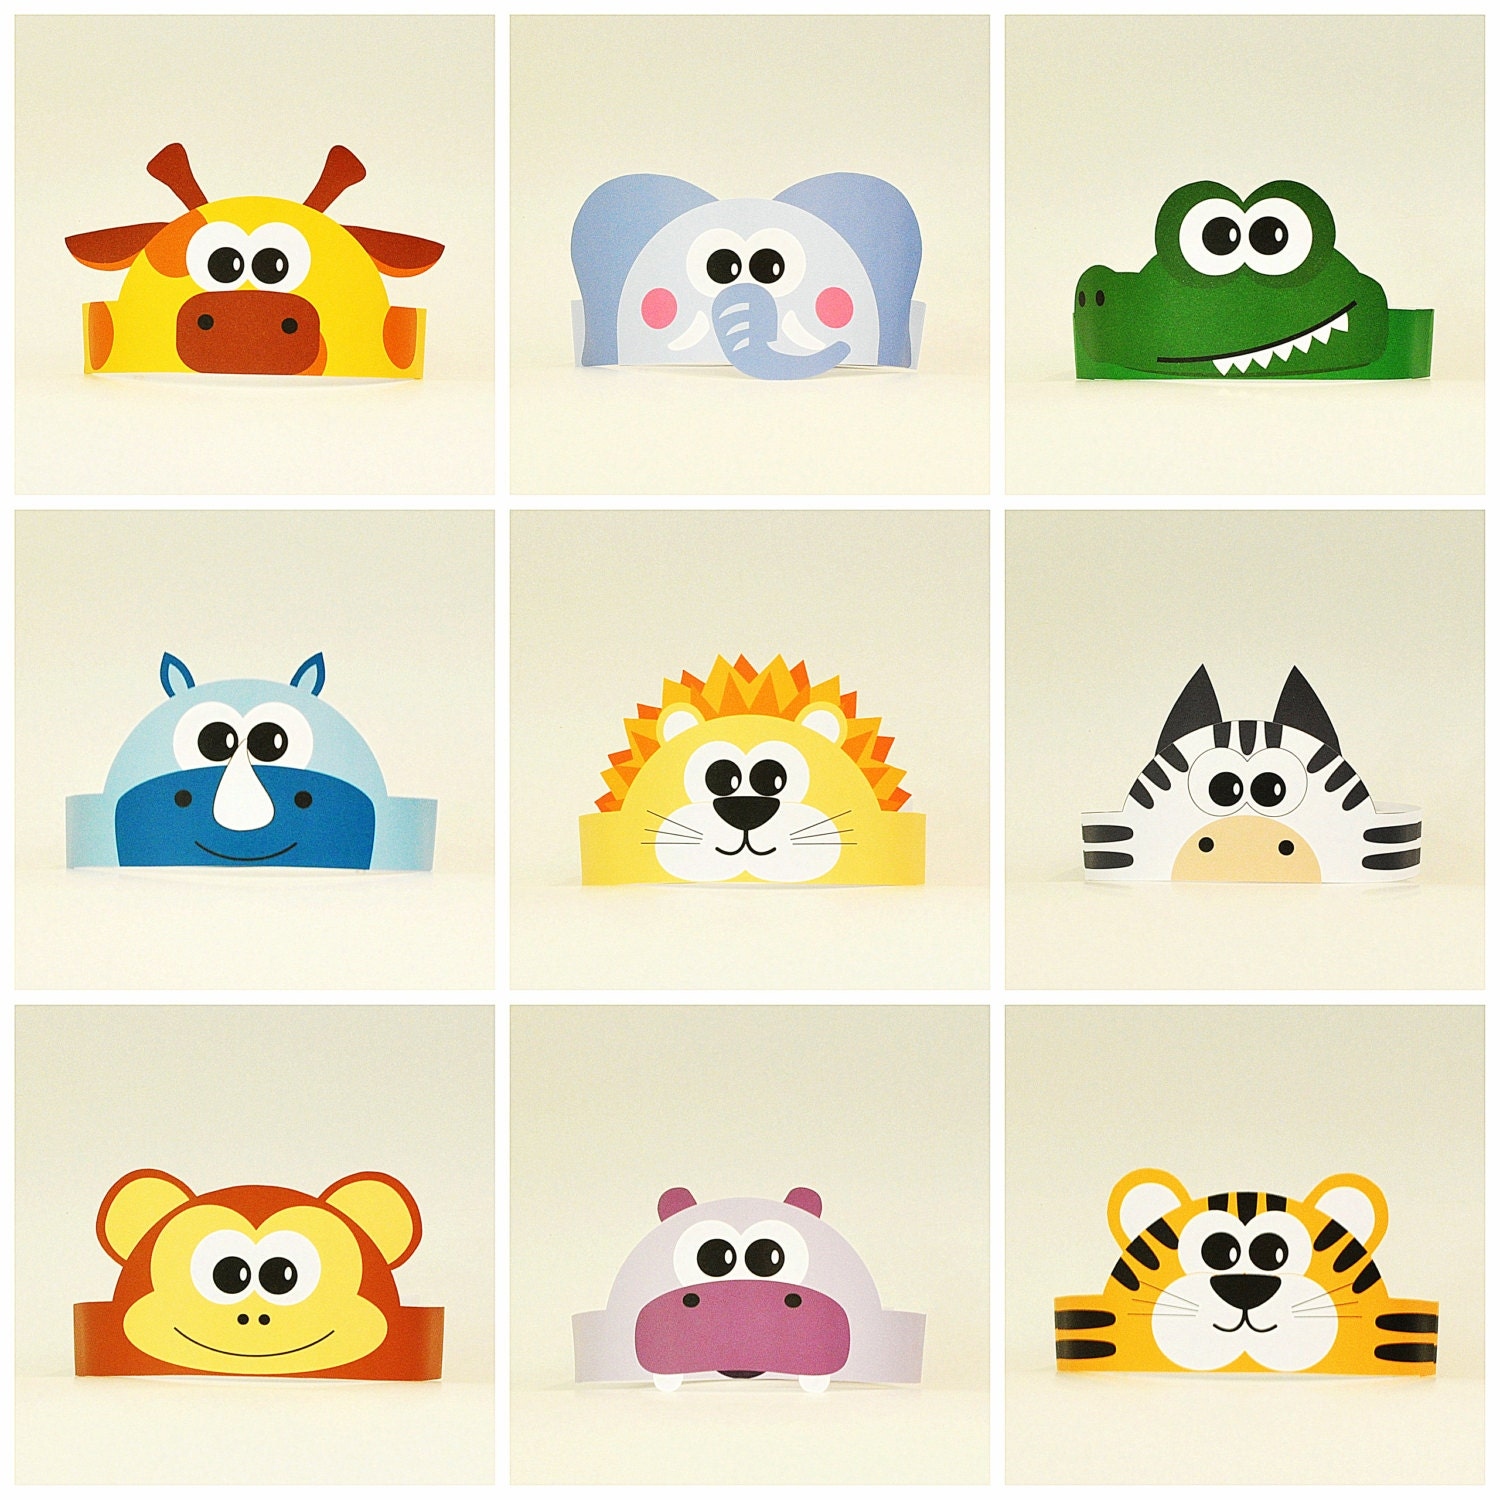 baby photo collage ideas download - 10 Jungle and Savanna Animals Paper Crowns Set 10 DIY Crowns